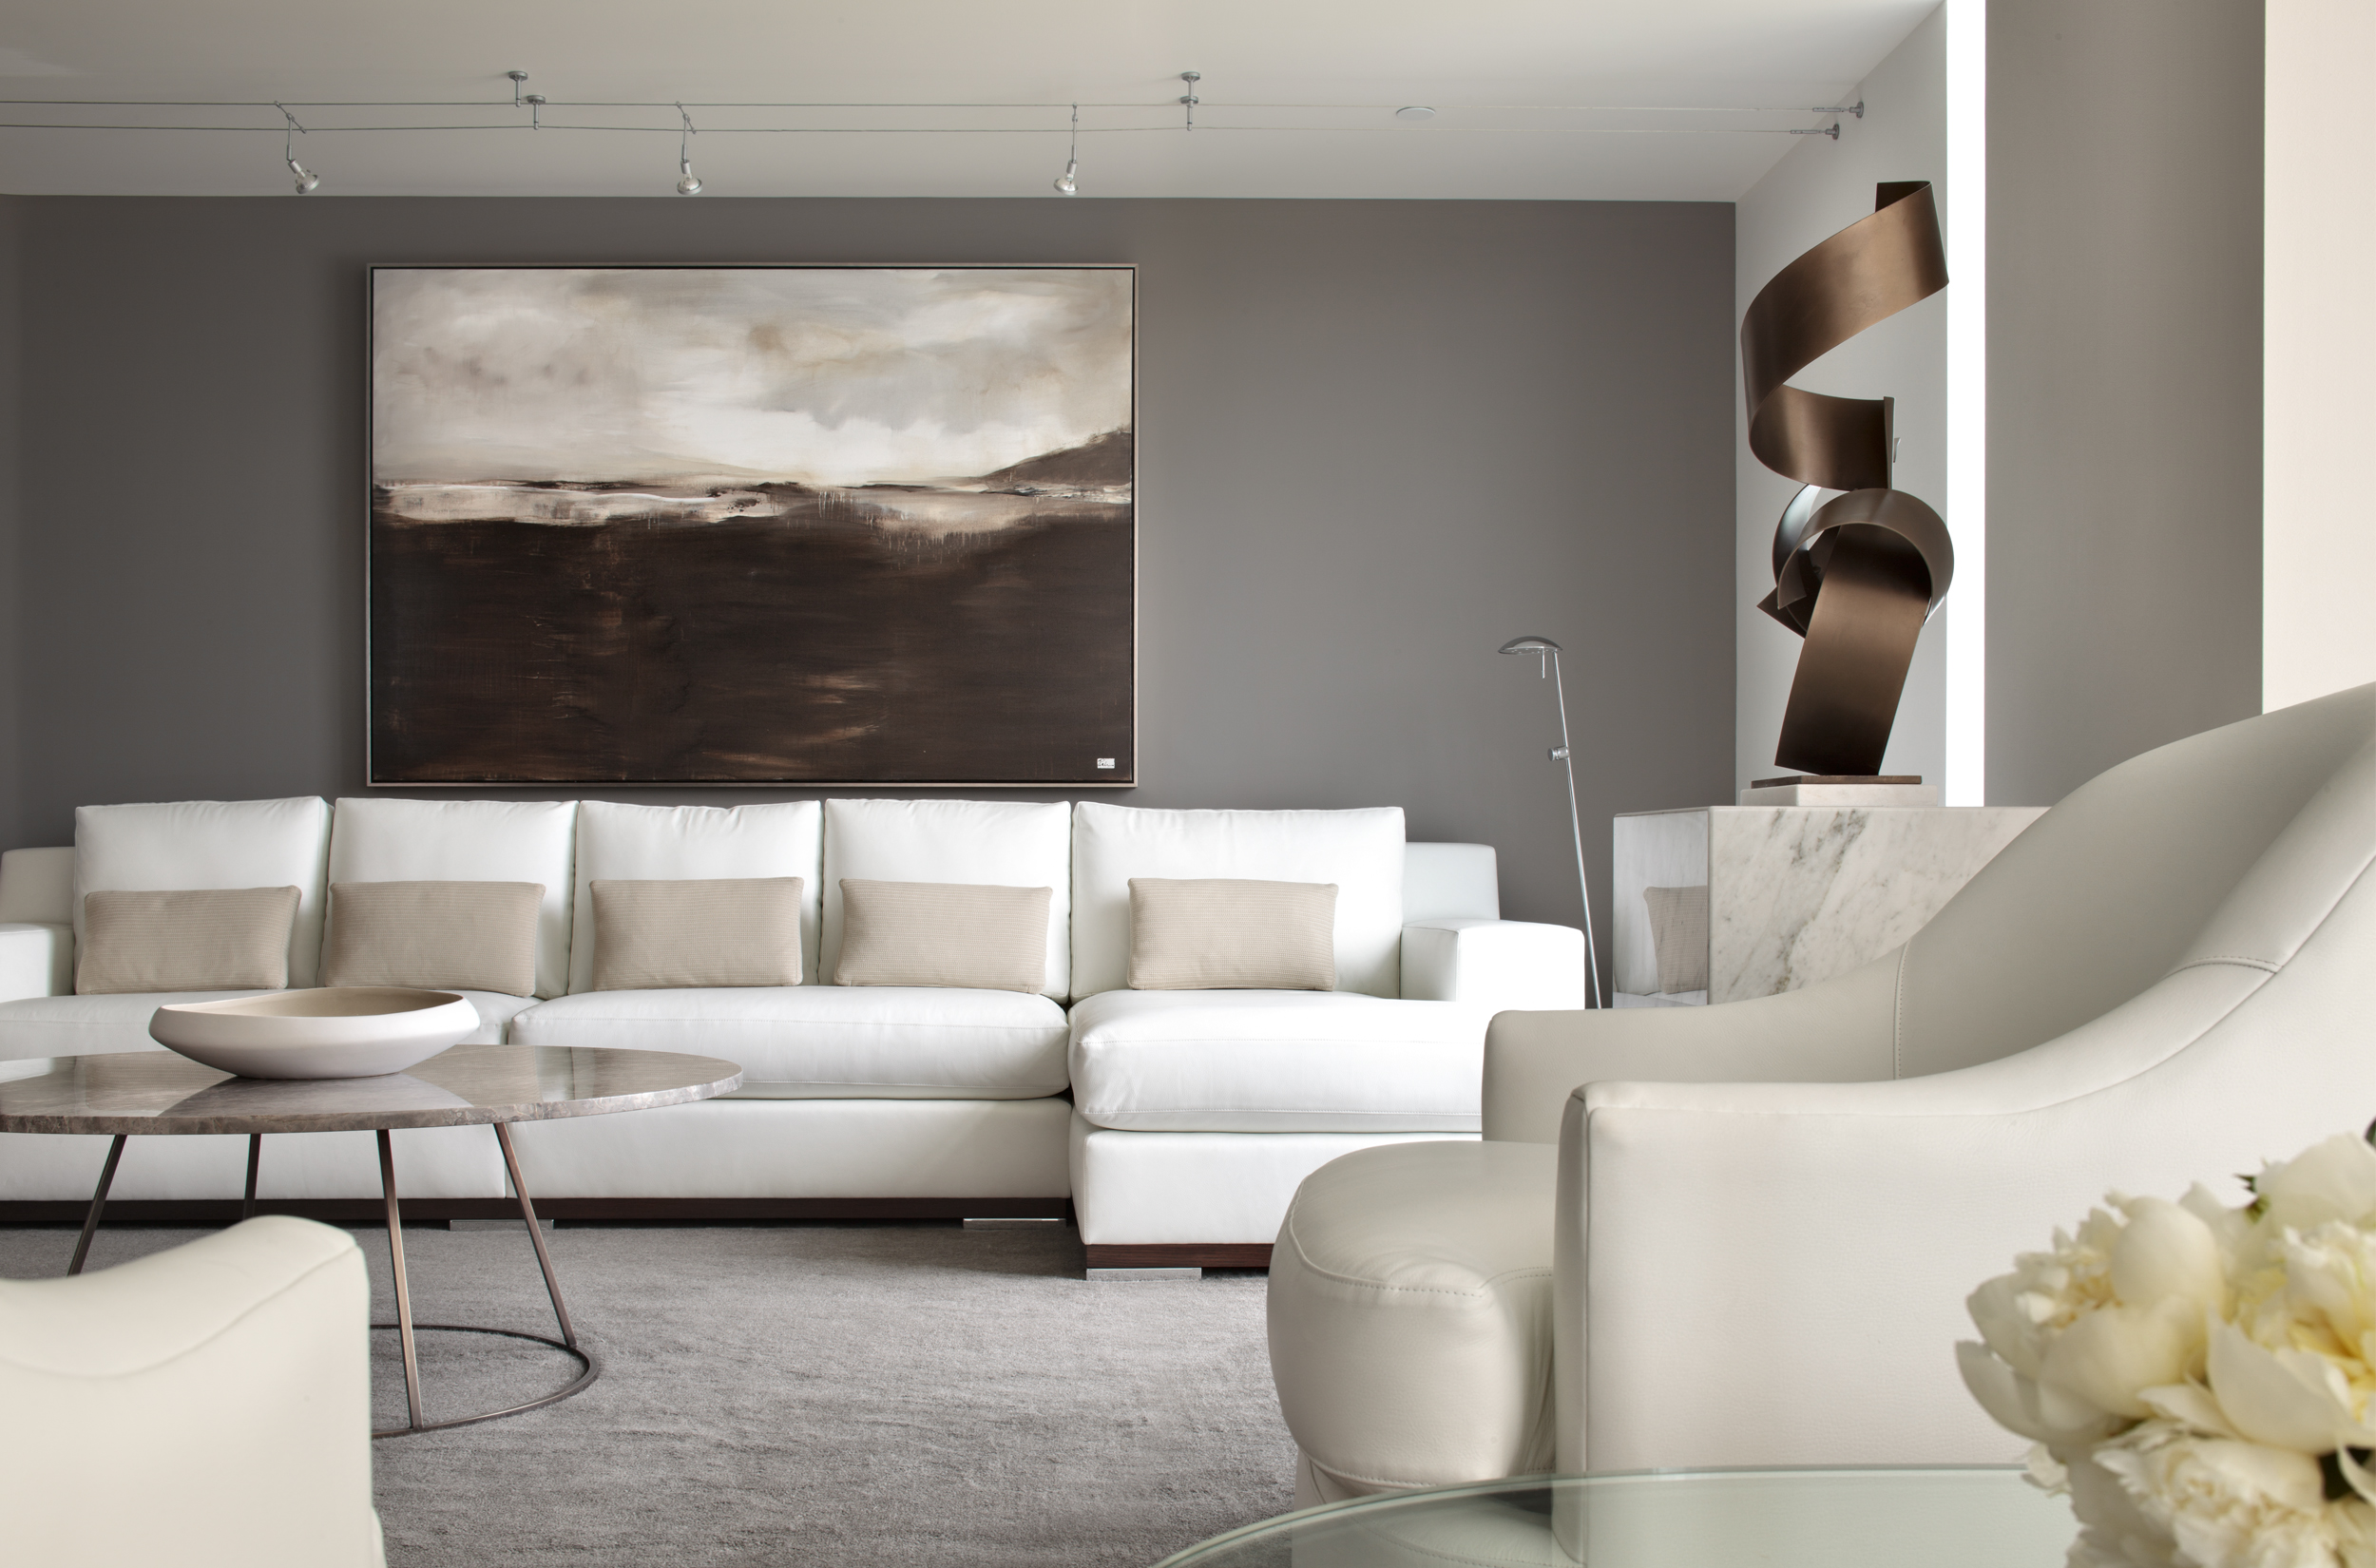 Patricia gray inc contemporary interior design vancouver - Interior designers ...